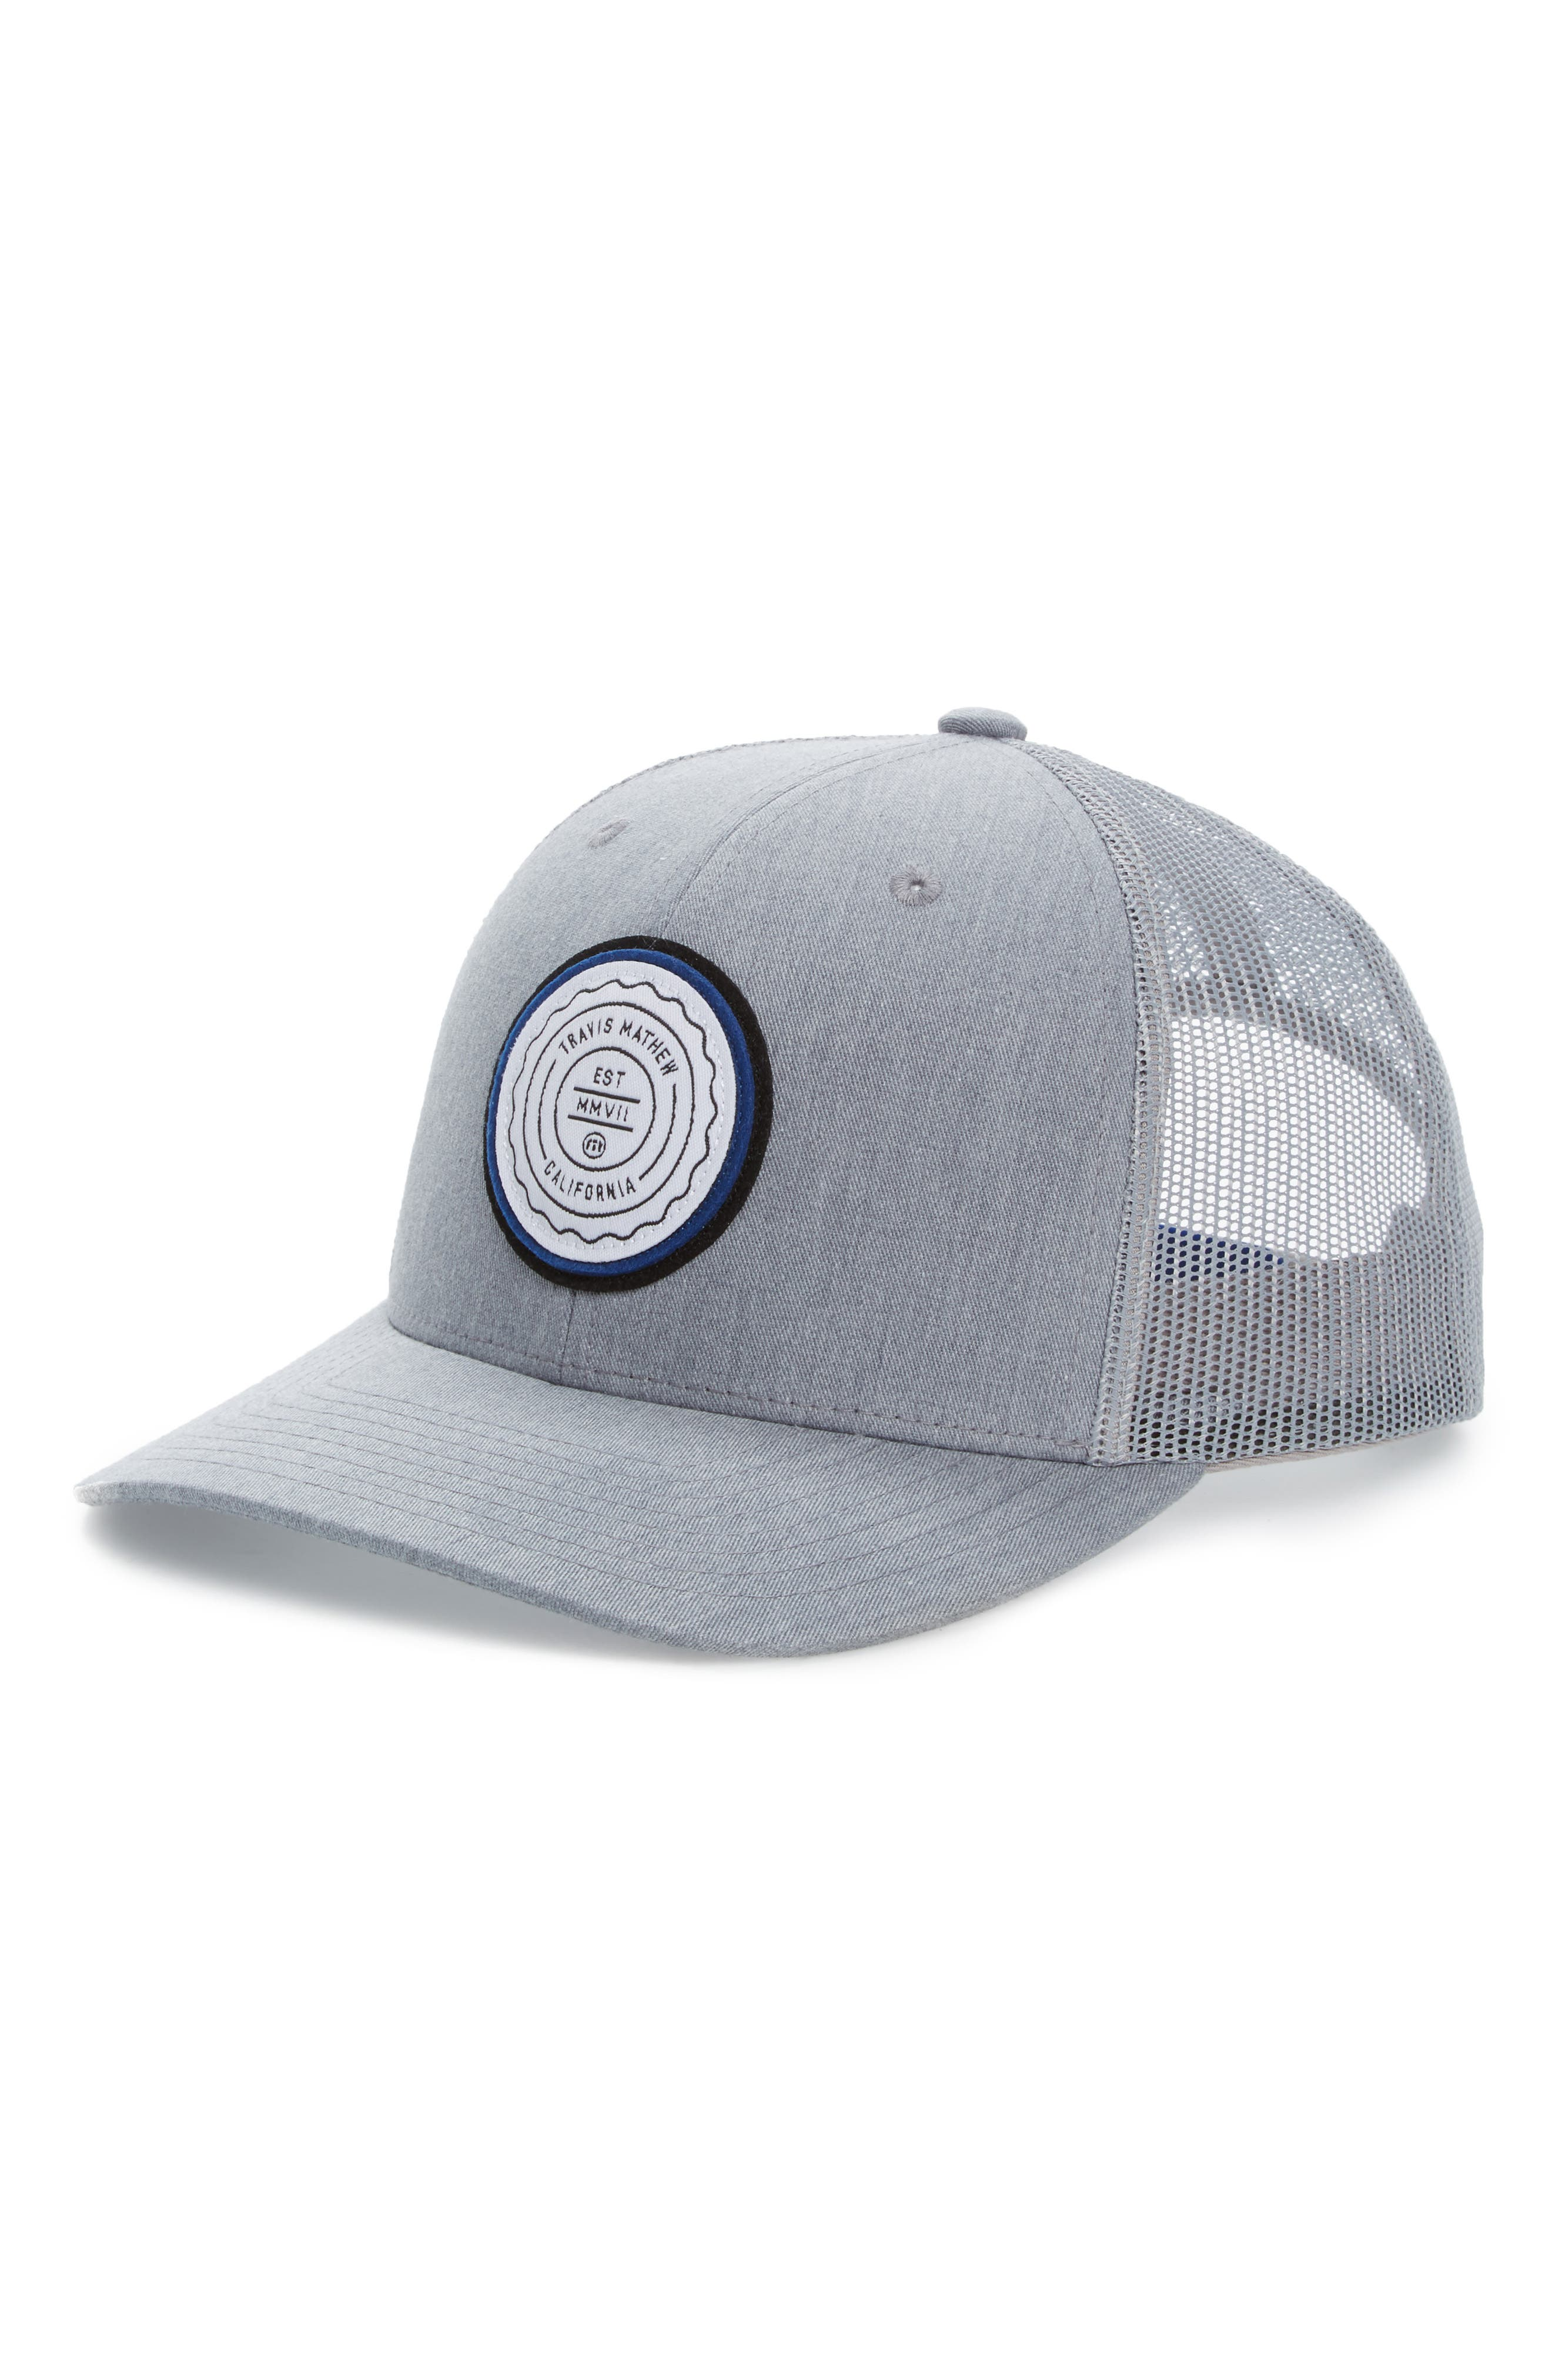 'Trip L' Trucker Hat,                             Main thumbnail 1, color,                             HEATHER GREY